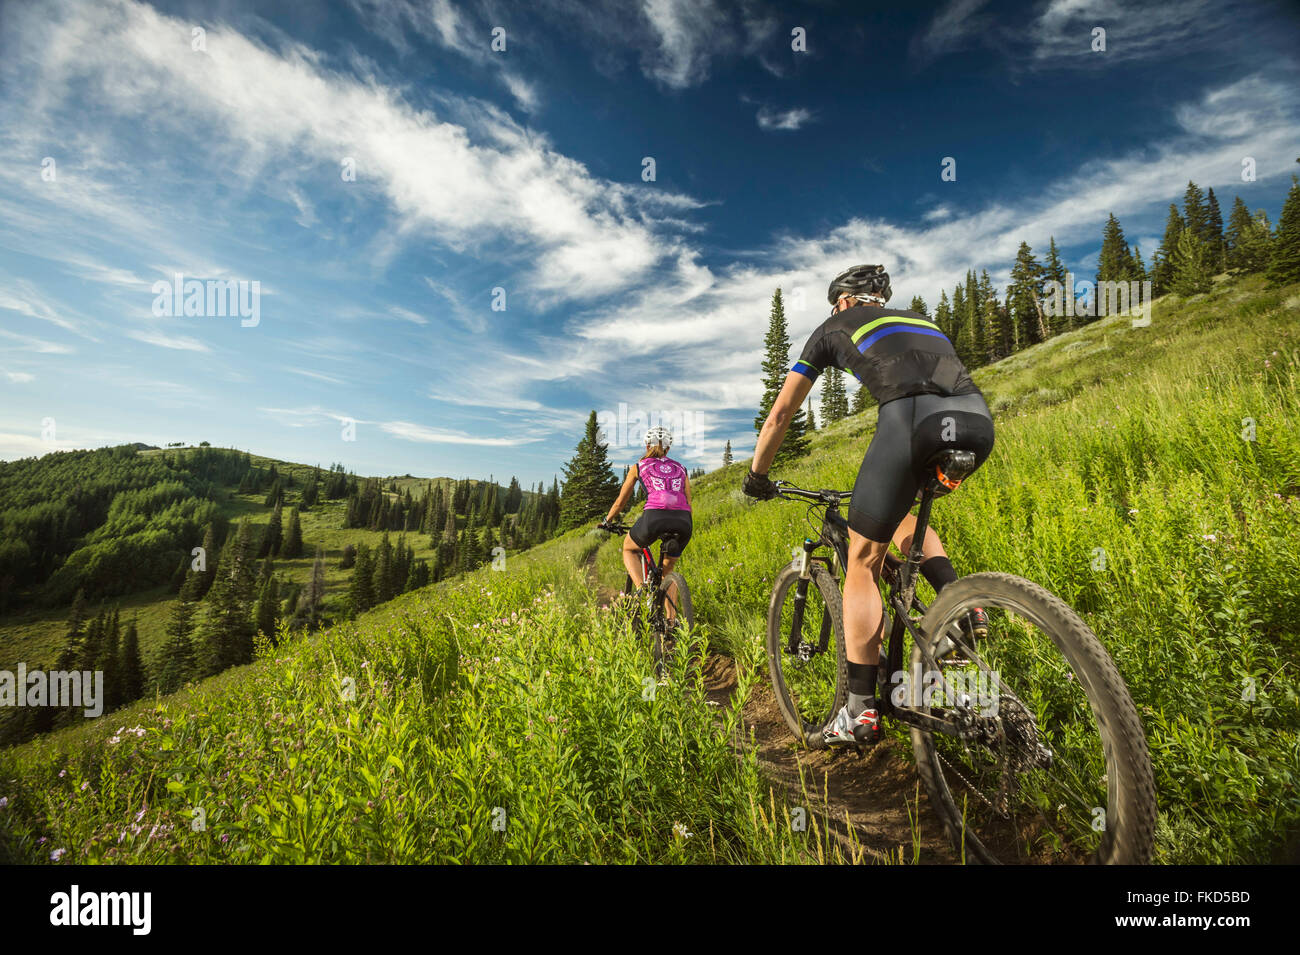 Mature couple during bicycle trip in mountain scenery - Stock Image